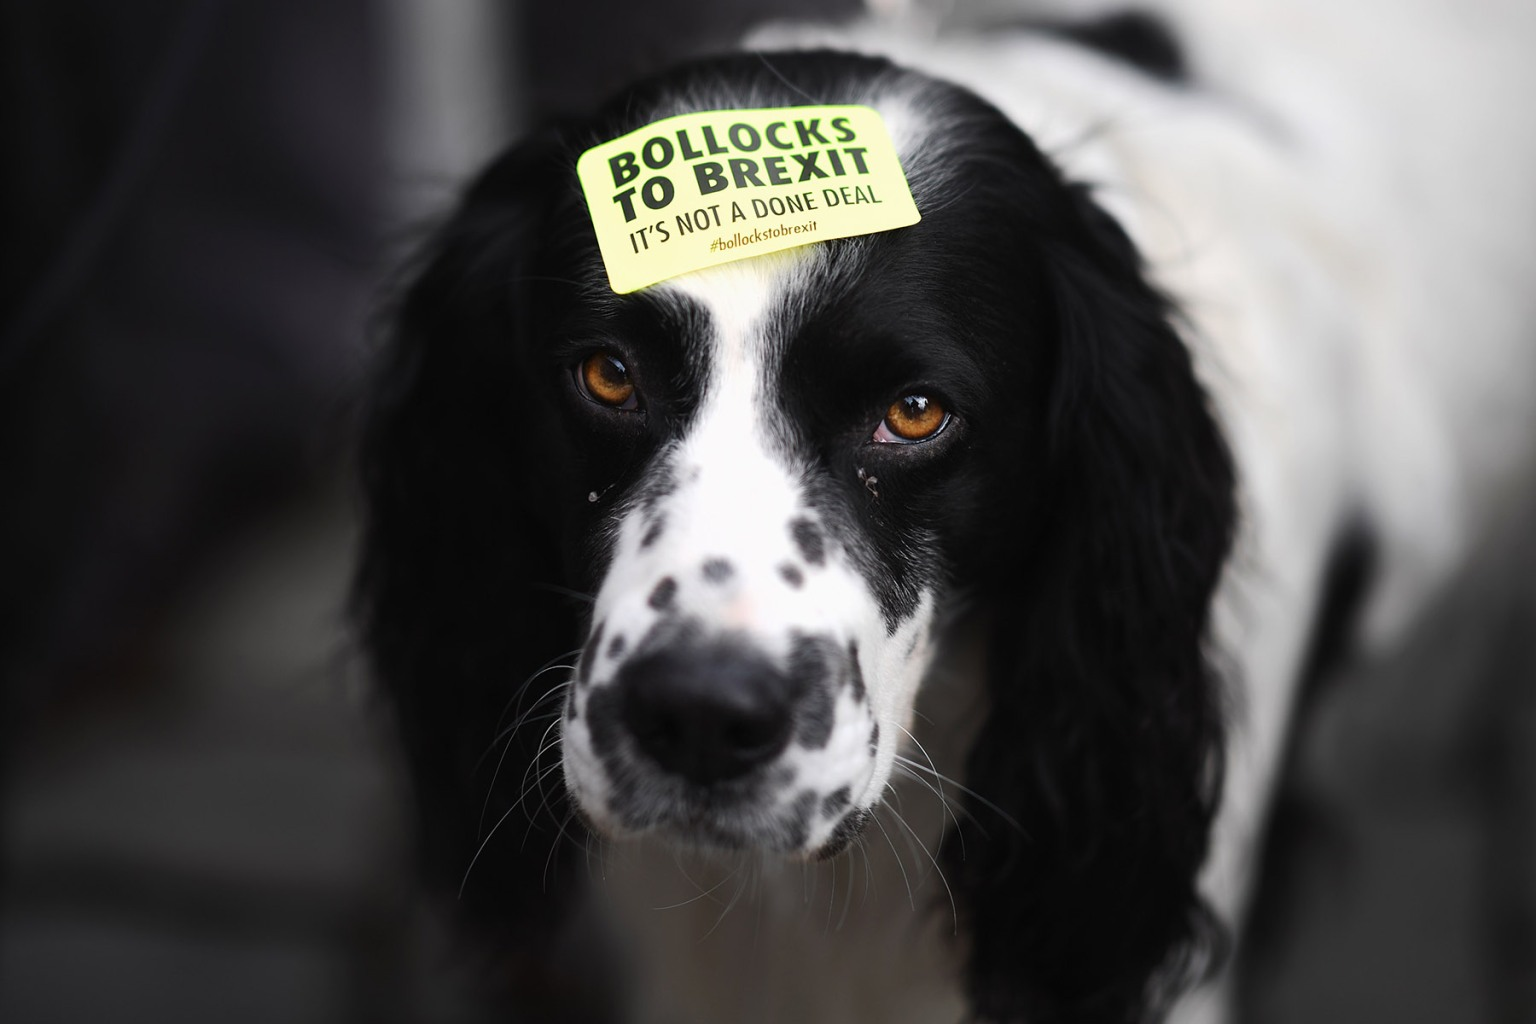 A demonstrator's dog is seen during the March For The Many, calling for a people's vote on the final outcome of the government's Brexit negotiations, in Liverpool, England, on Sept. 23. Jeff J Mitchell/Getty Images